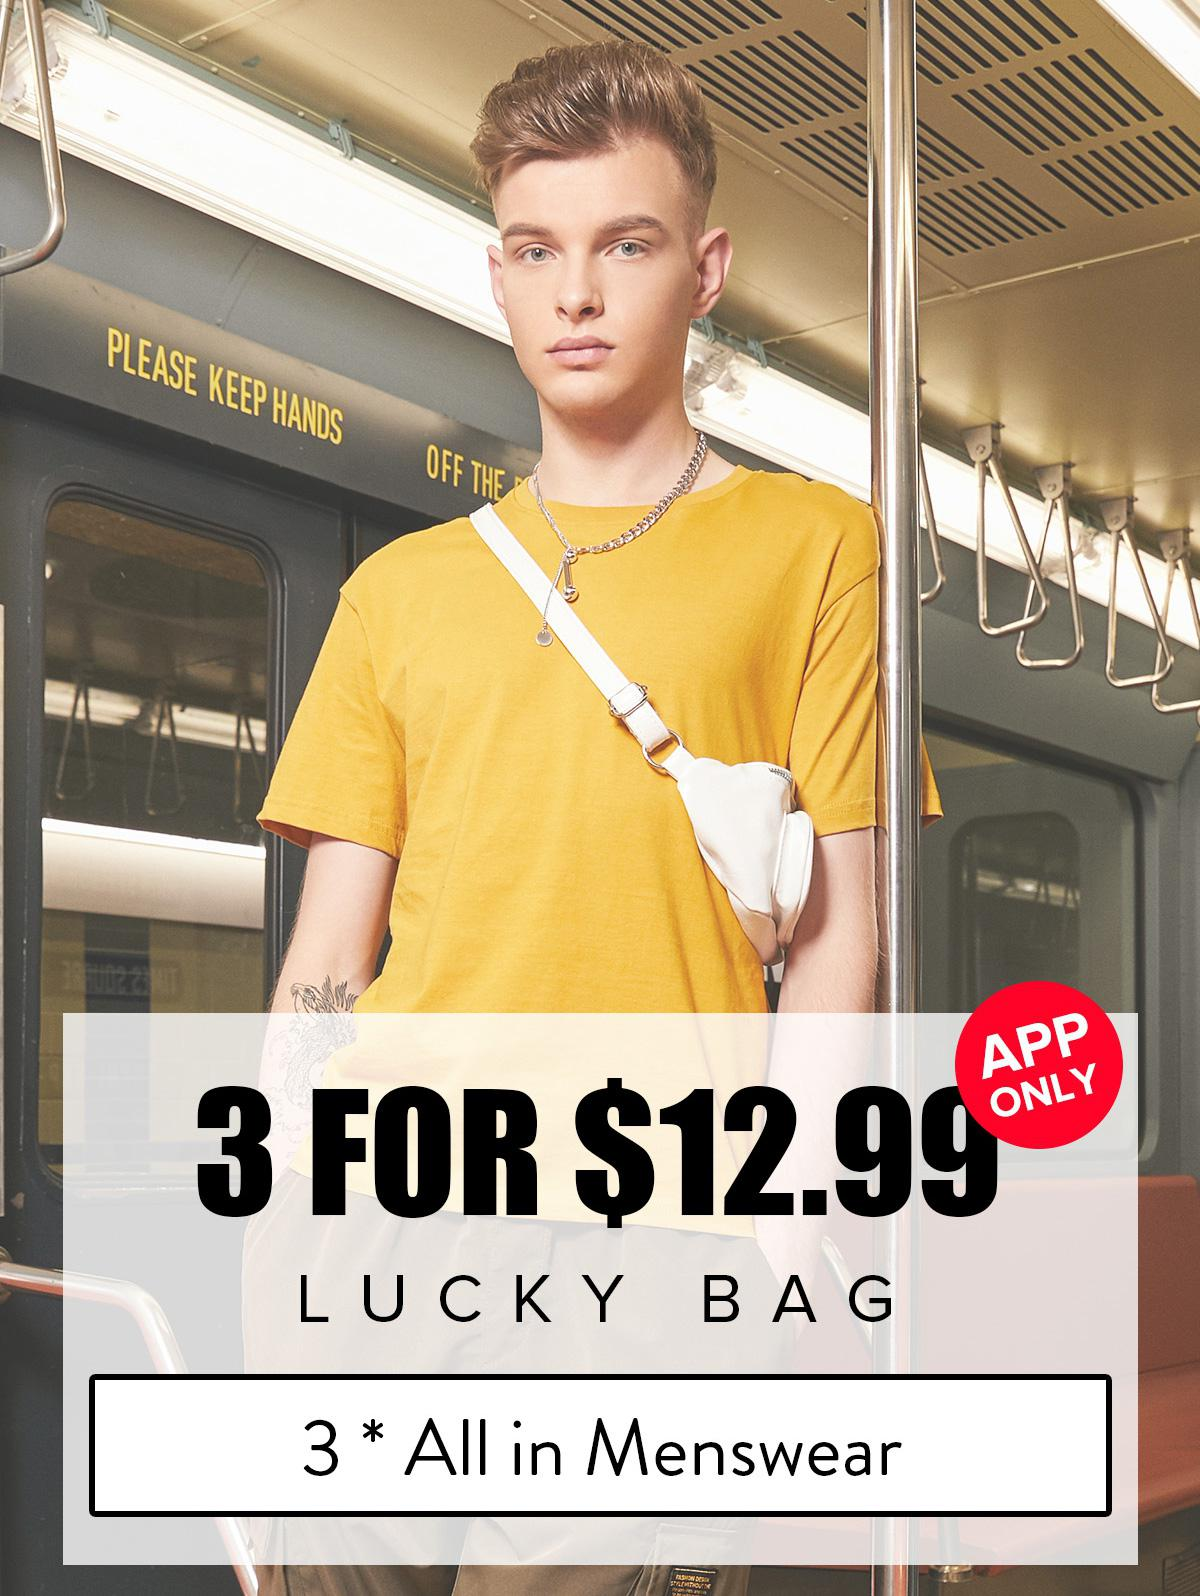 ZAFUL Lucky Bag - 3*All In Menswear - Limited Quantity